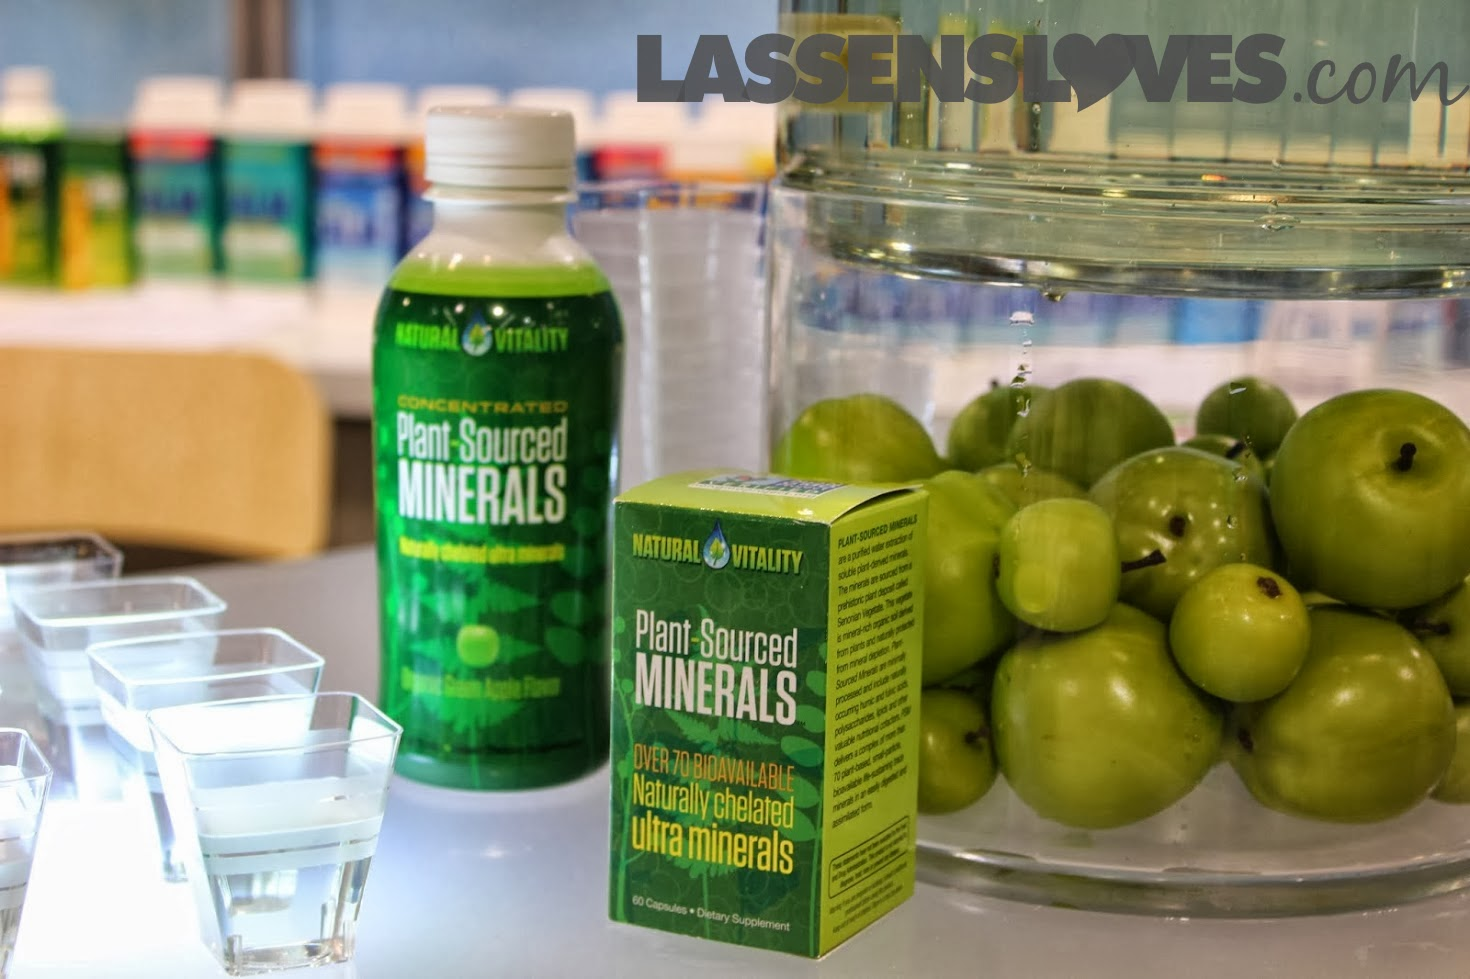 Natural+Foods+Expo+West+2014, Natural+Foods, Expo+West, Natural+Vitality, Plant+Sourced+Minerals